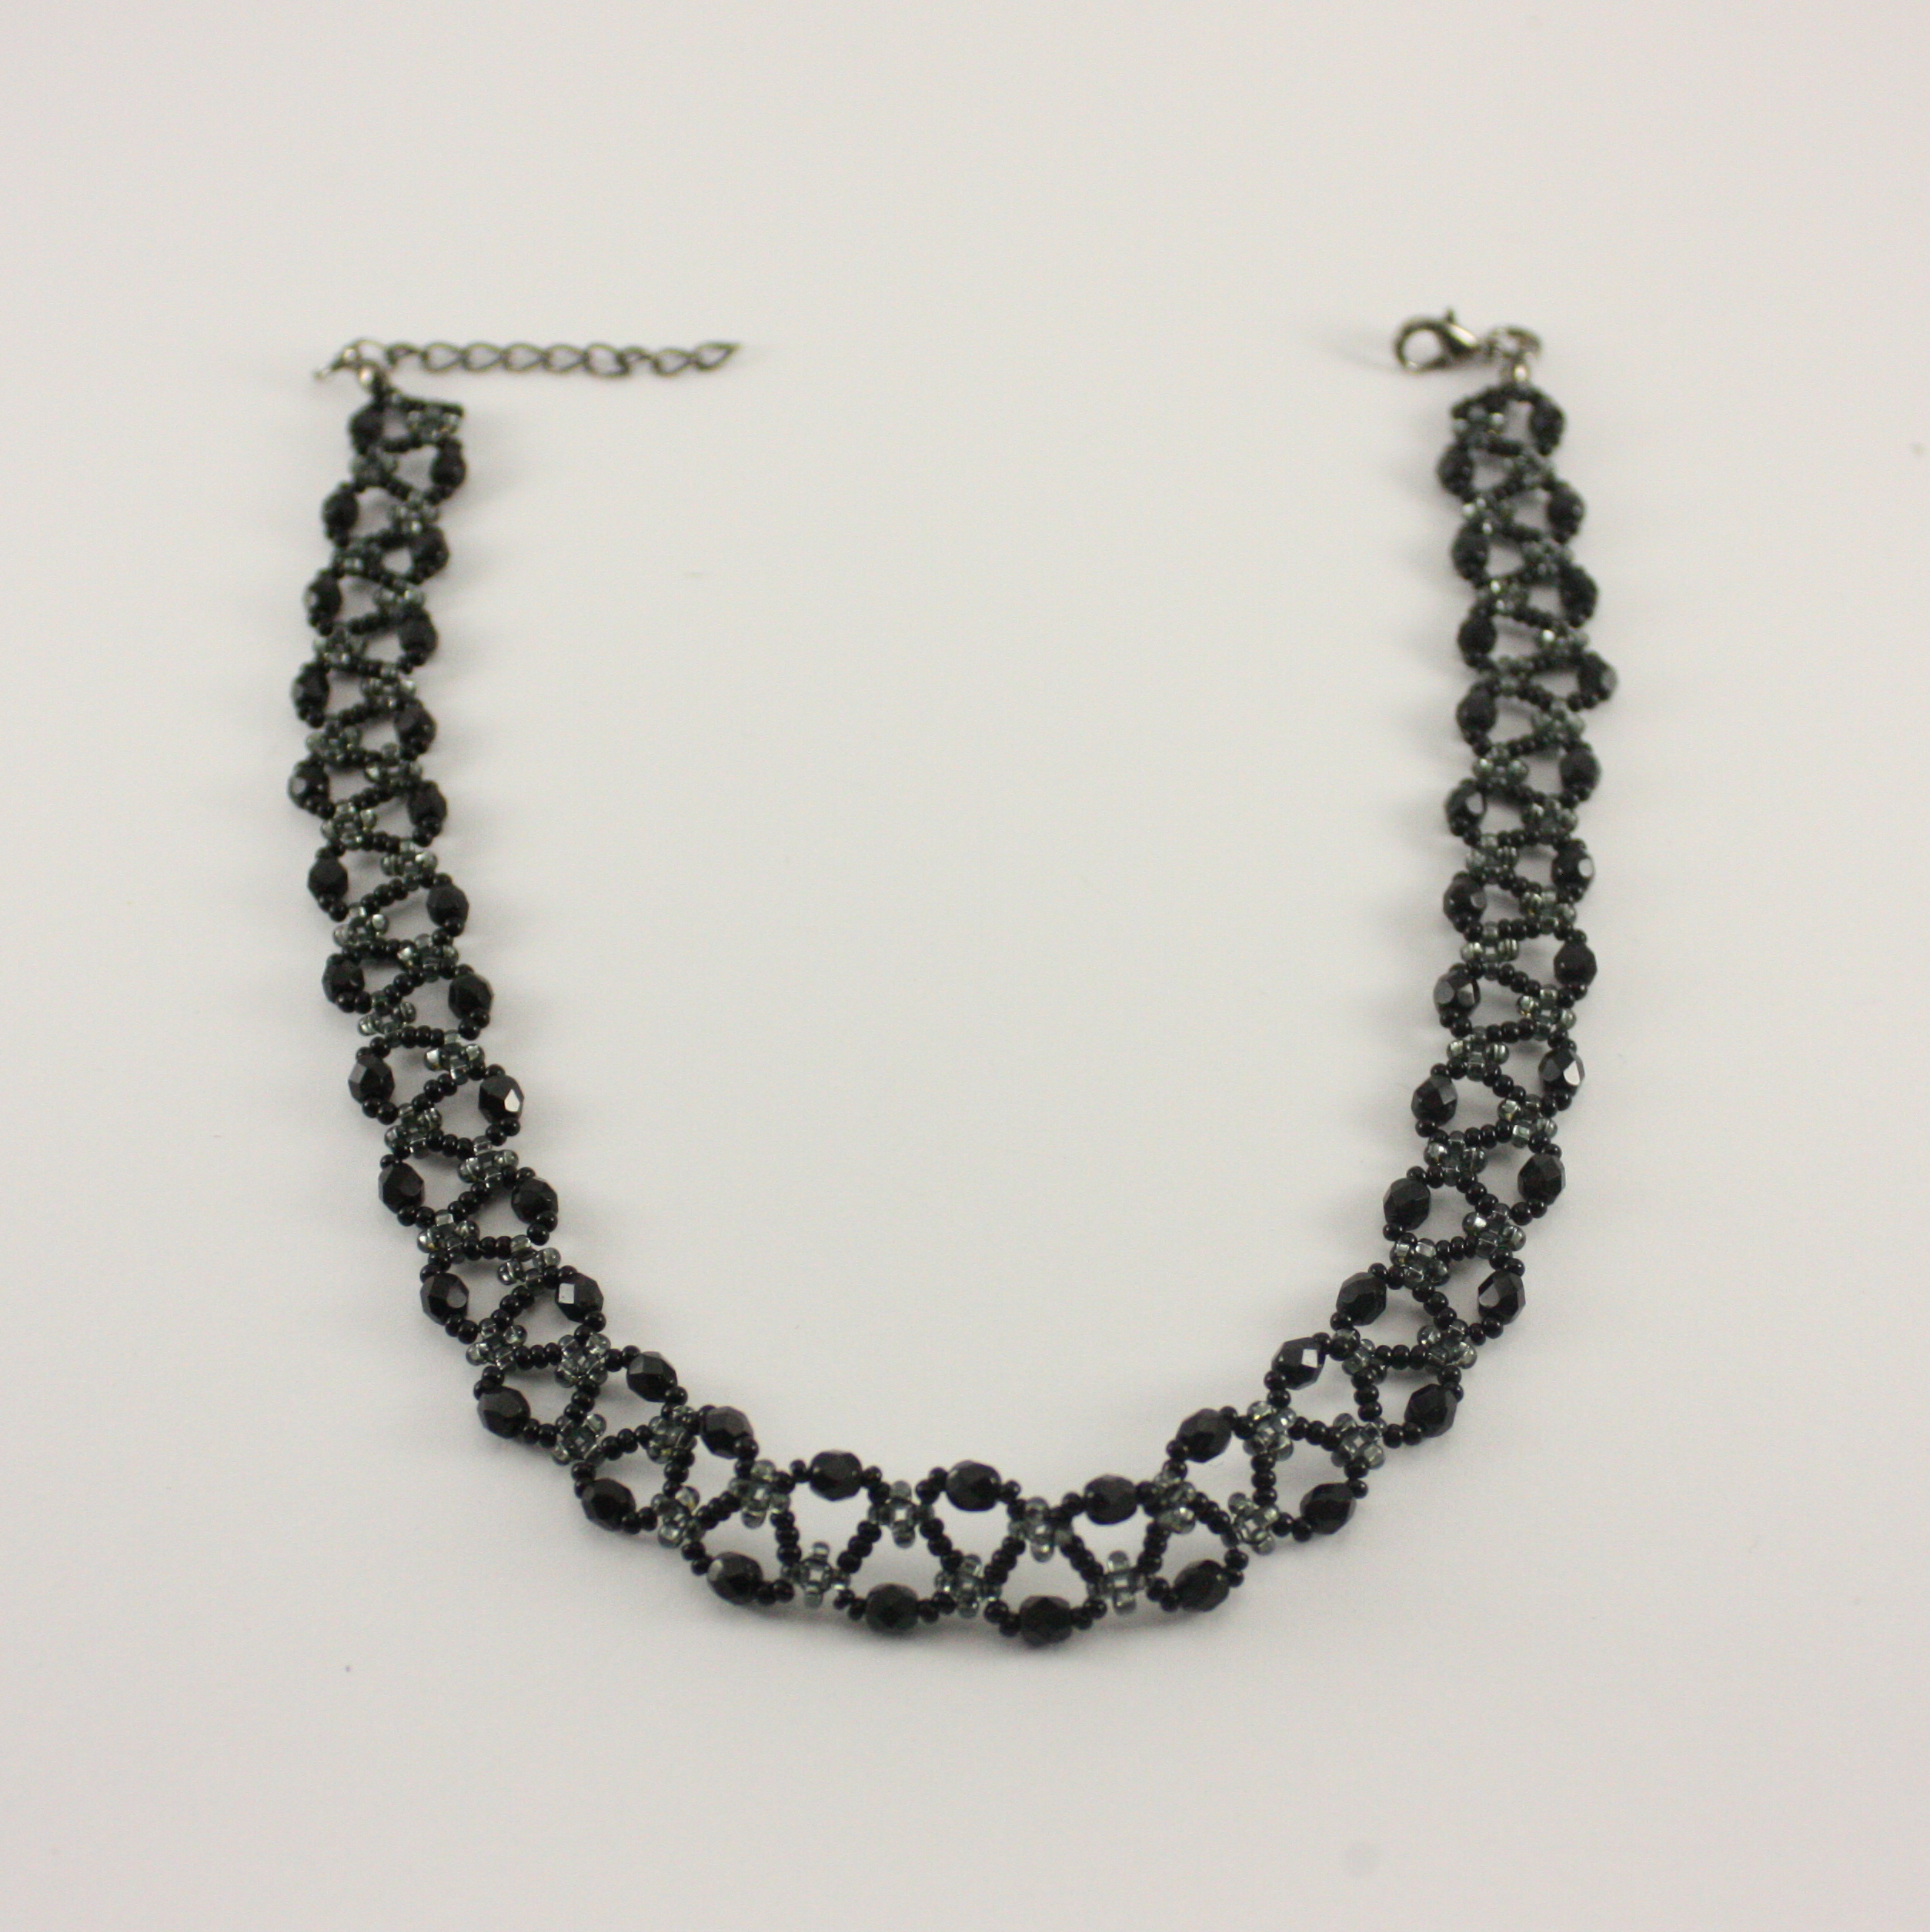 K17030 NECKLACE TO THE NECK